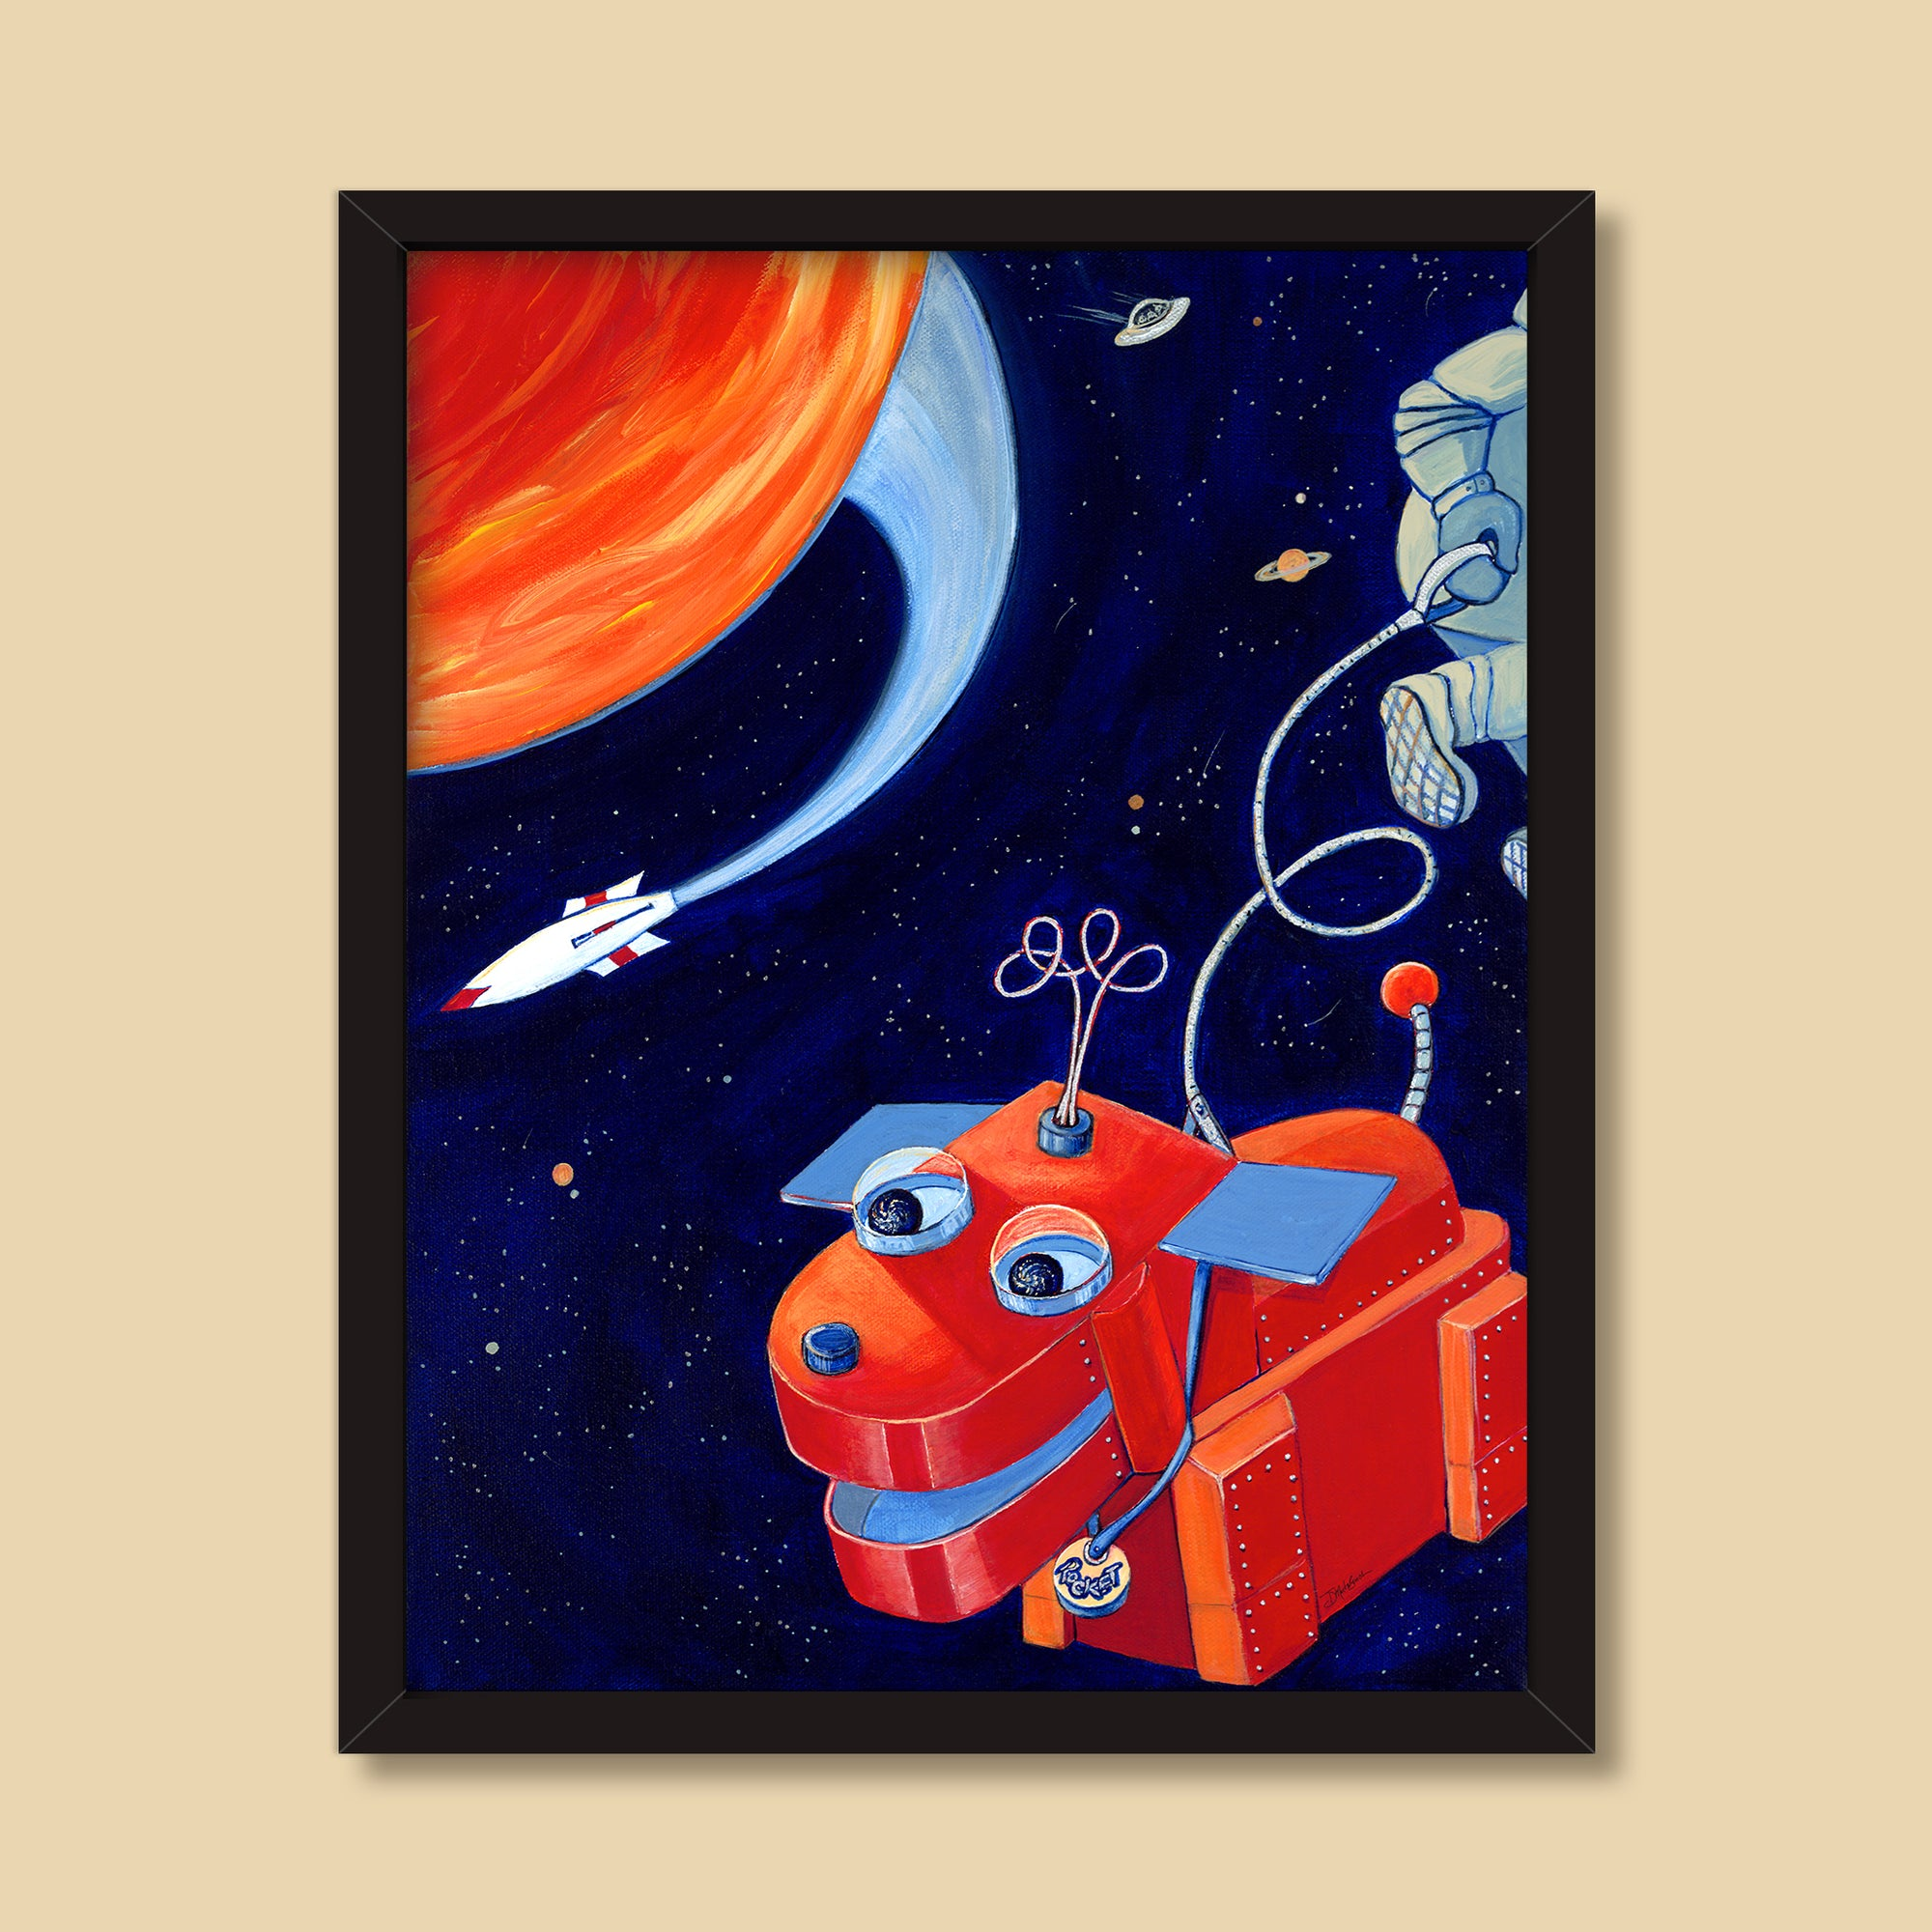 Space Walk | Mixed Media Illustration by Denise Marta-Burch